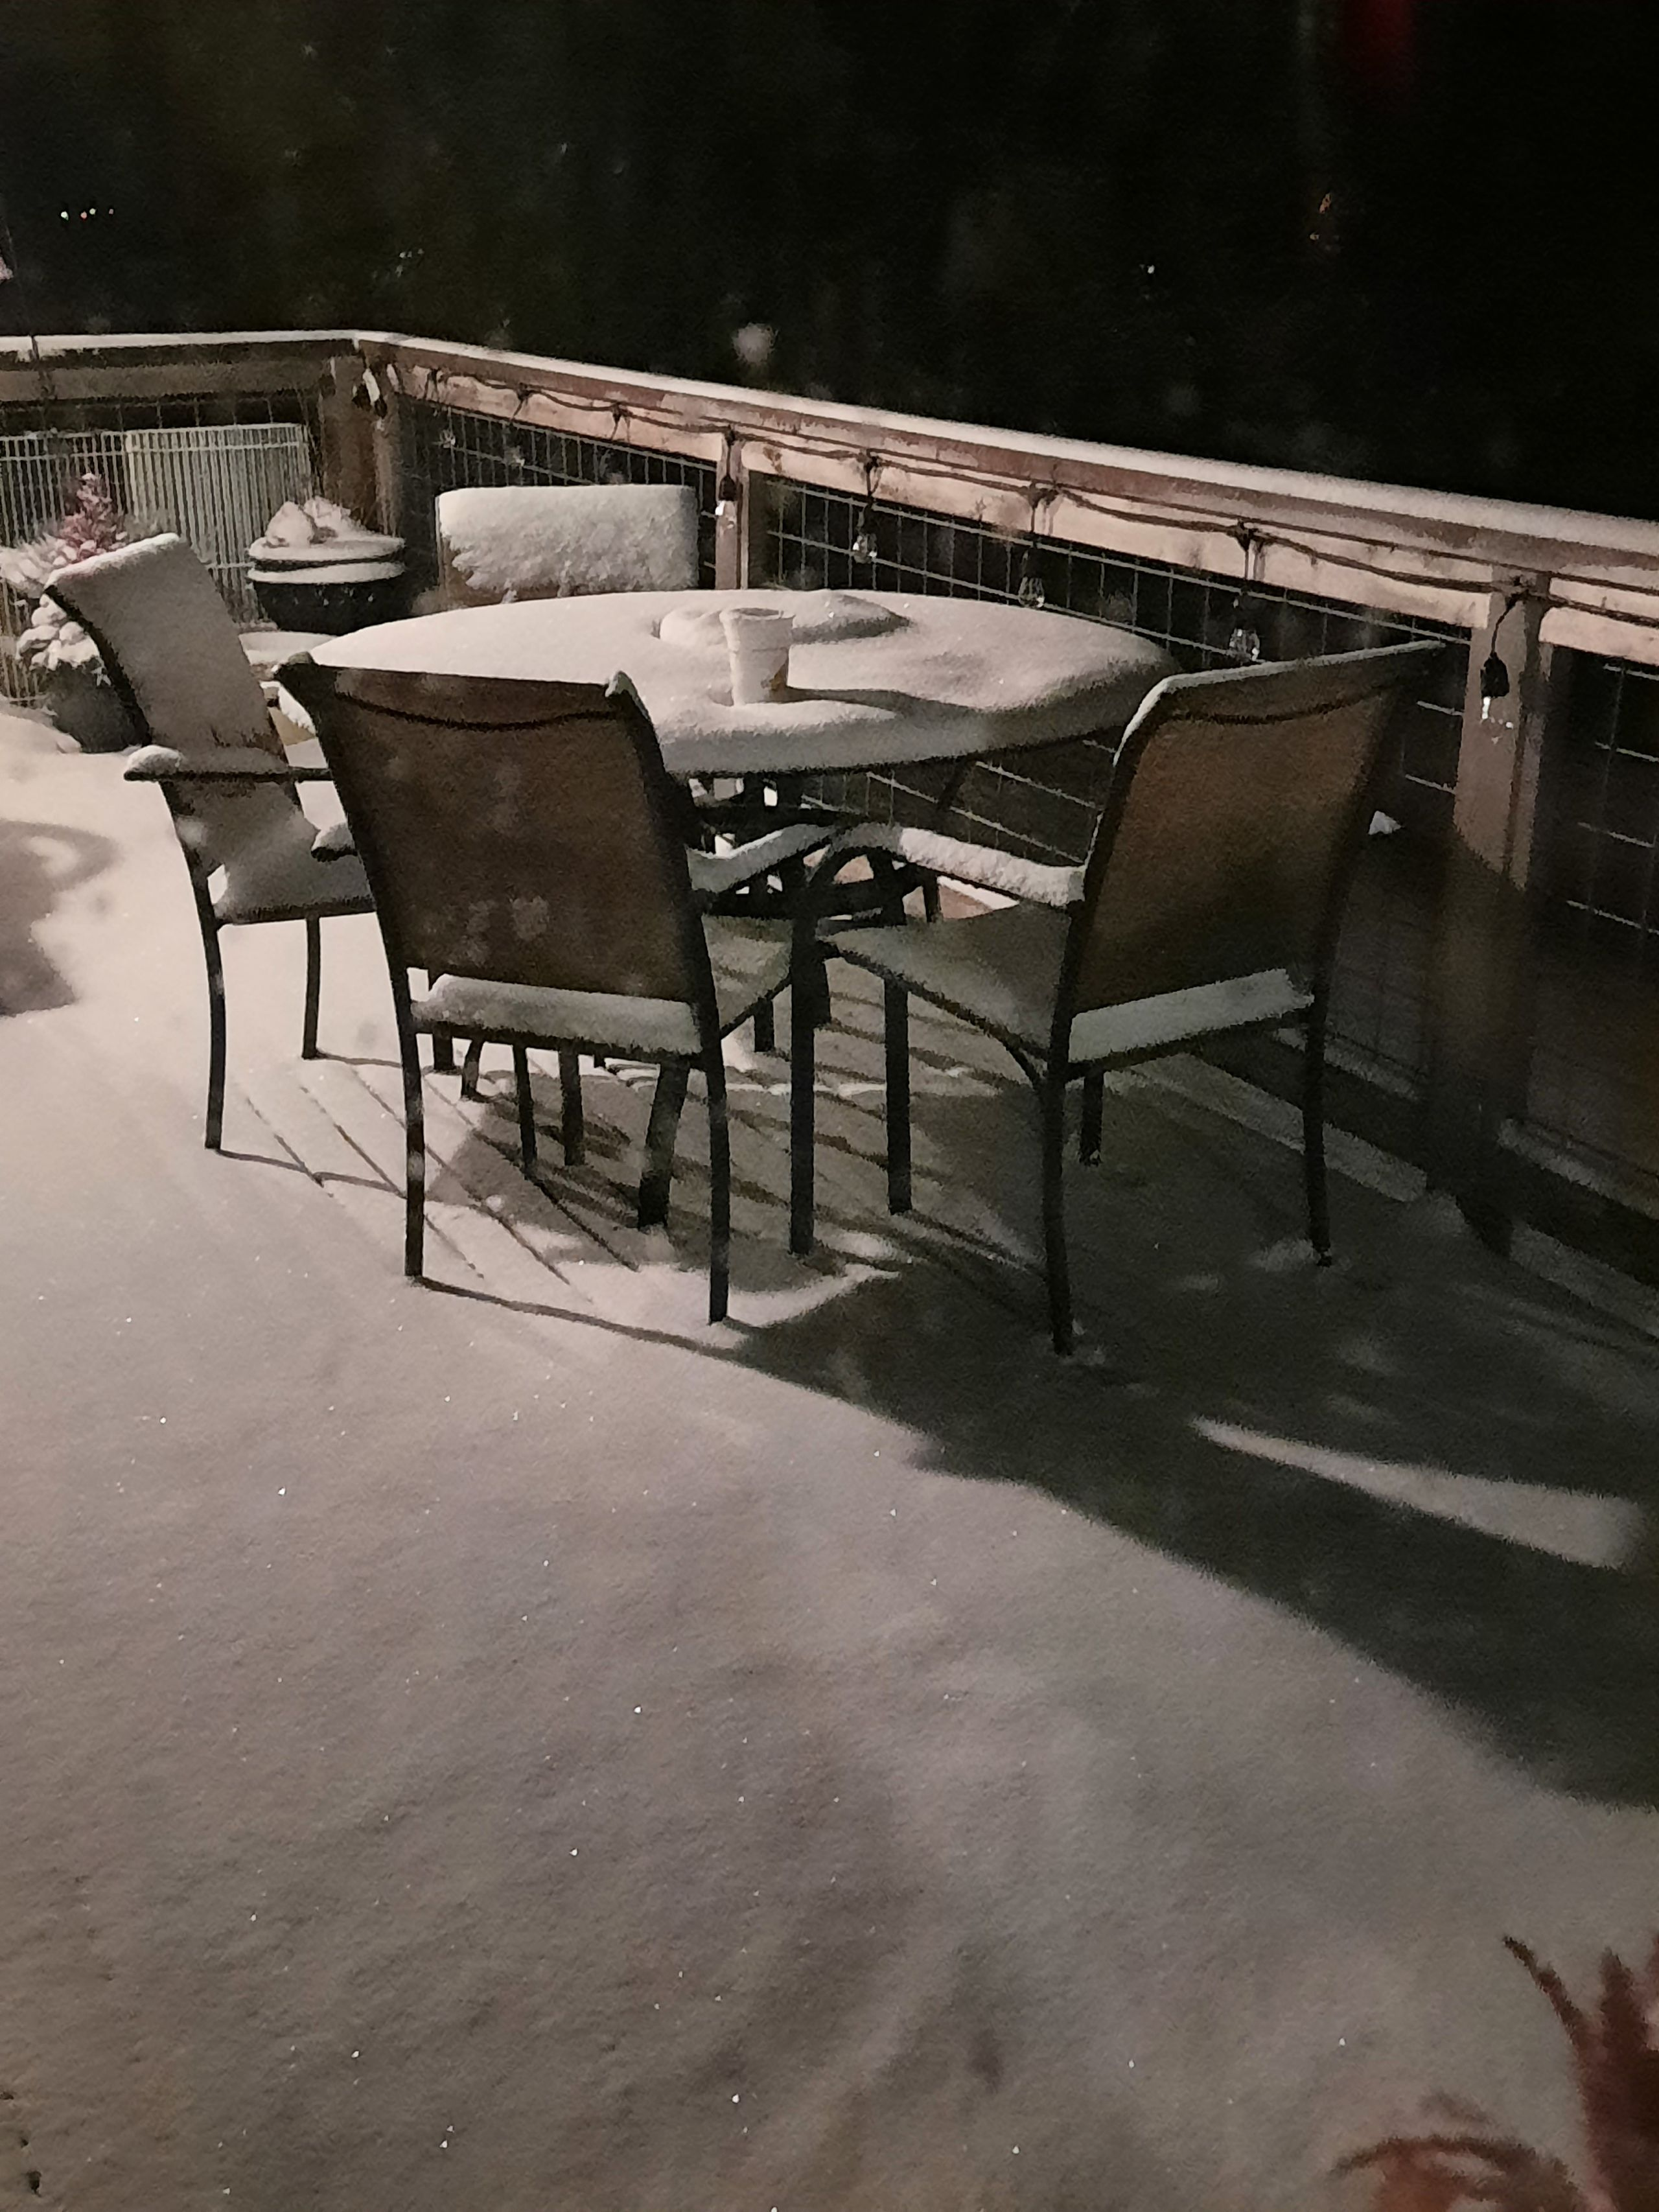 A couple inches of snow in Longbranch. Taken Thursday evening. (Image: TJ Smith / Chime In)